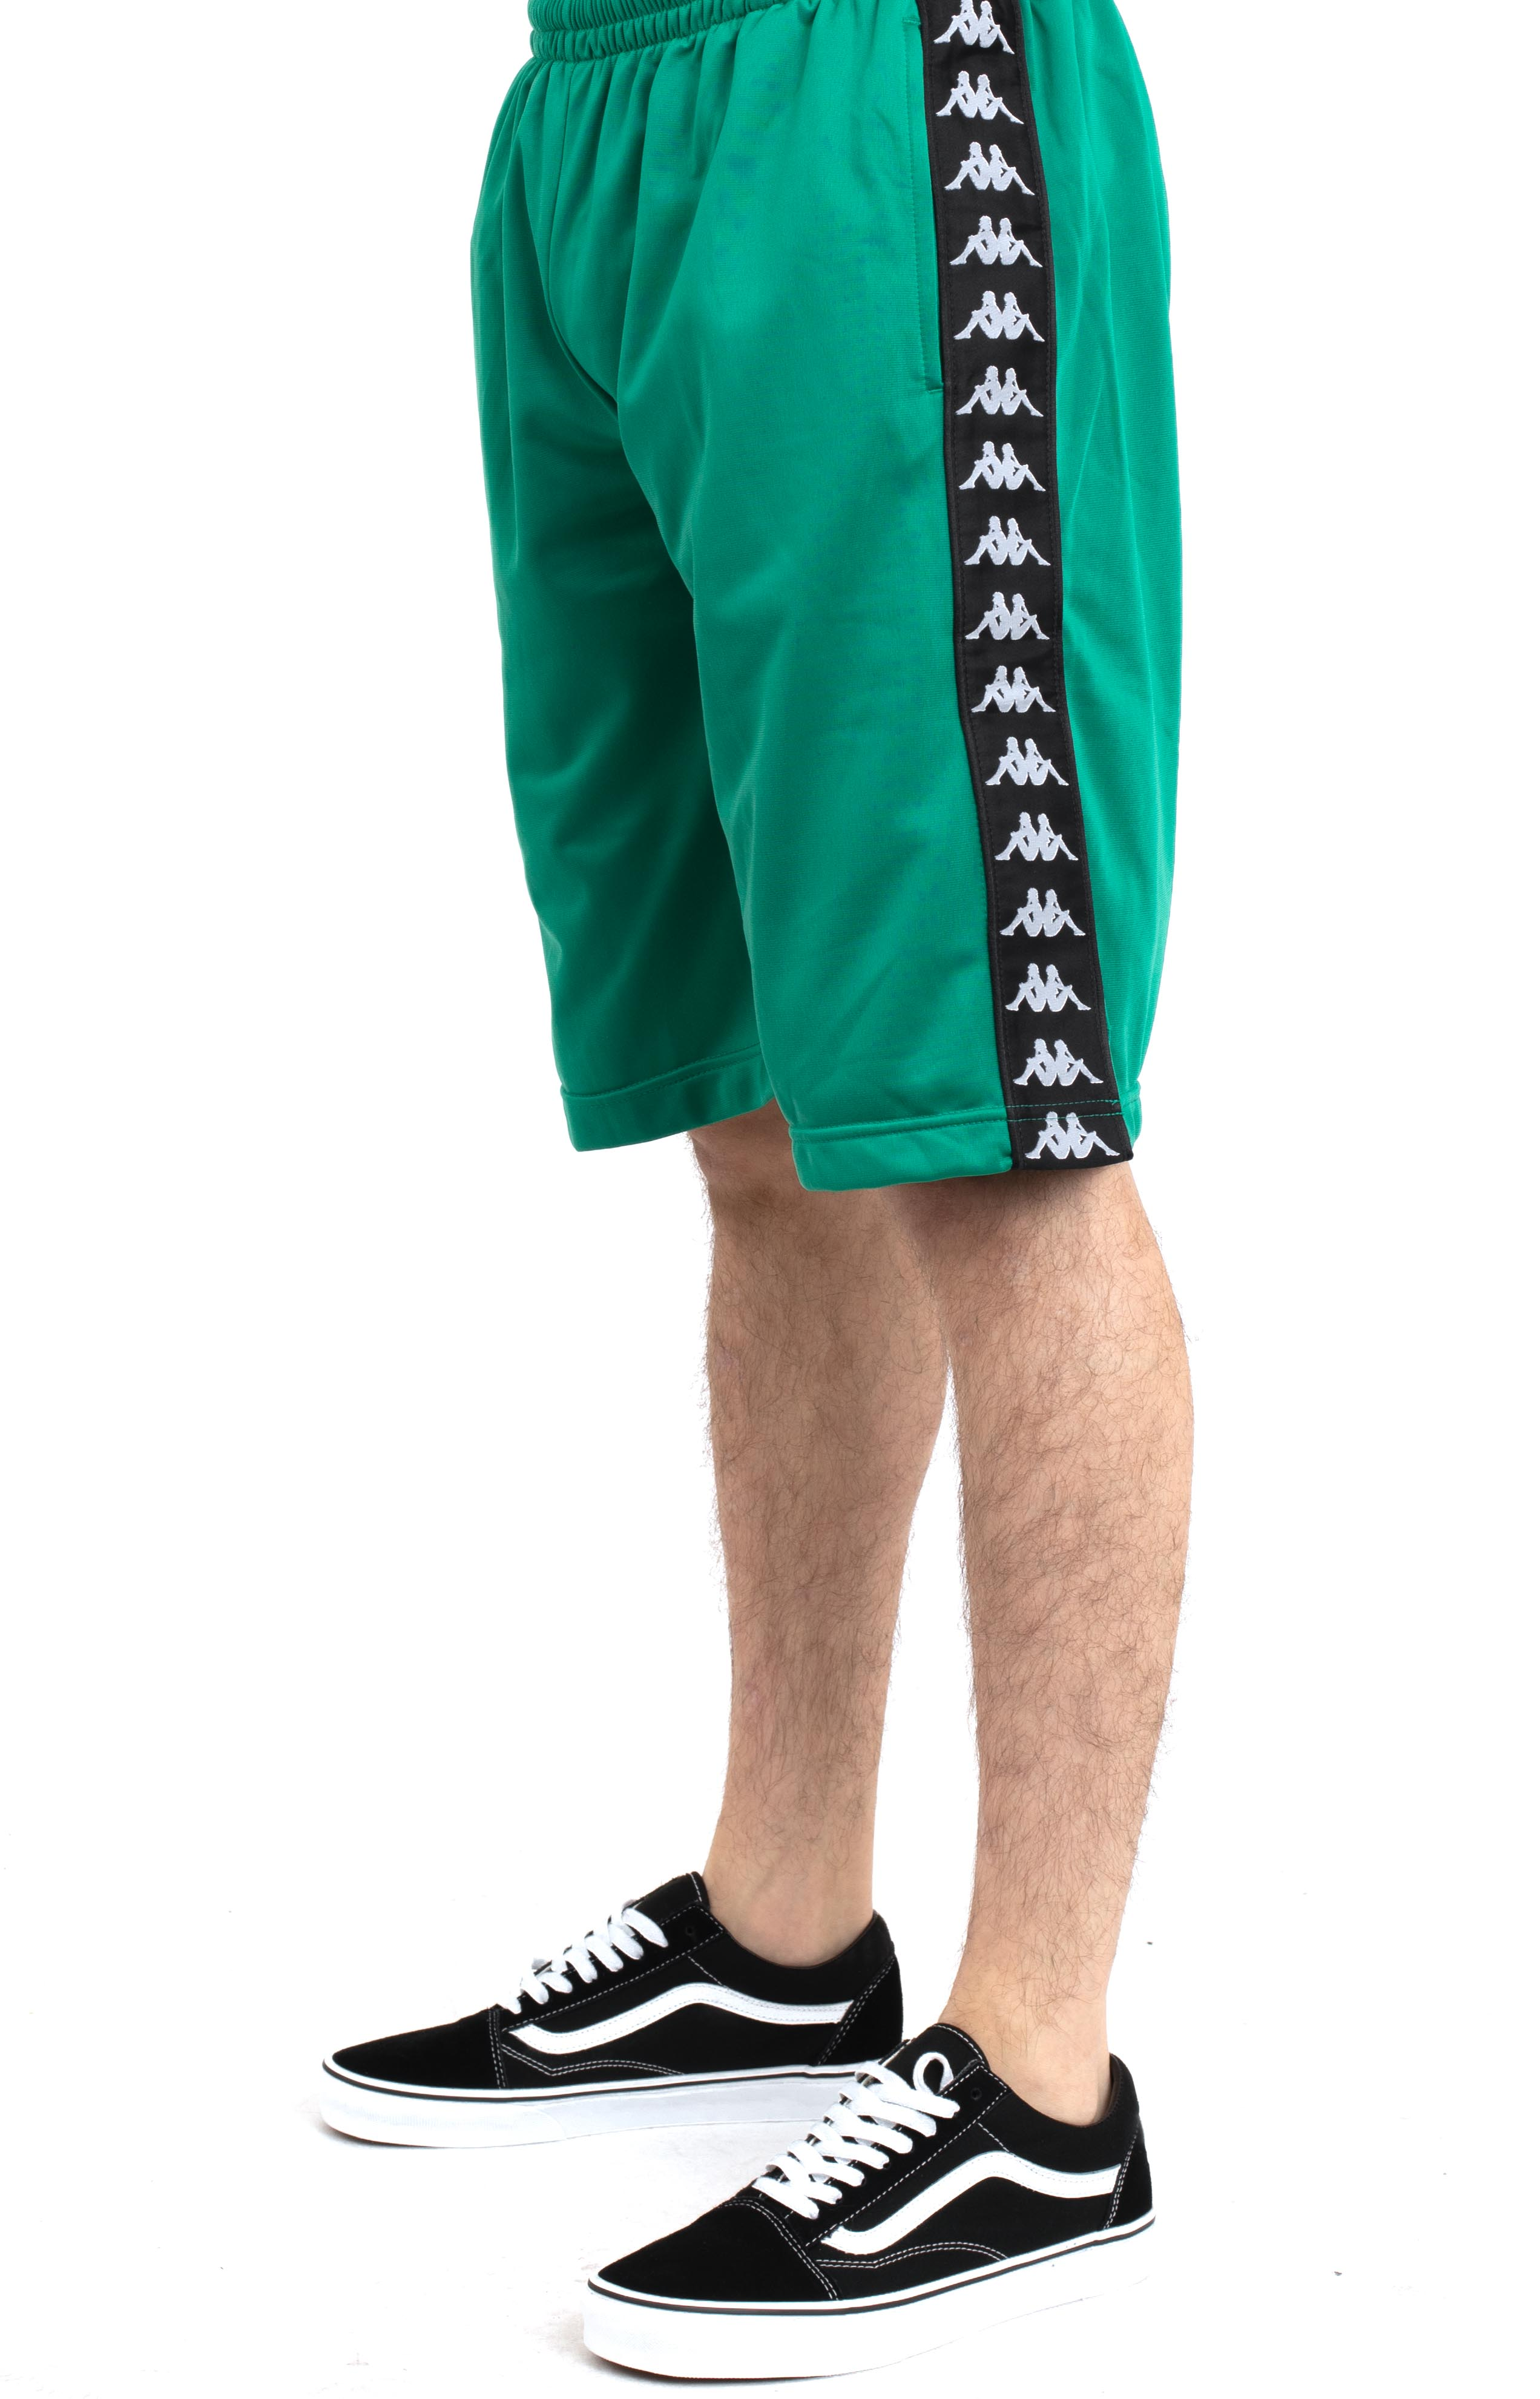 222 Banda Treadwellz Shorts - Green/Black